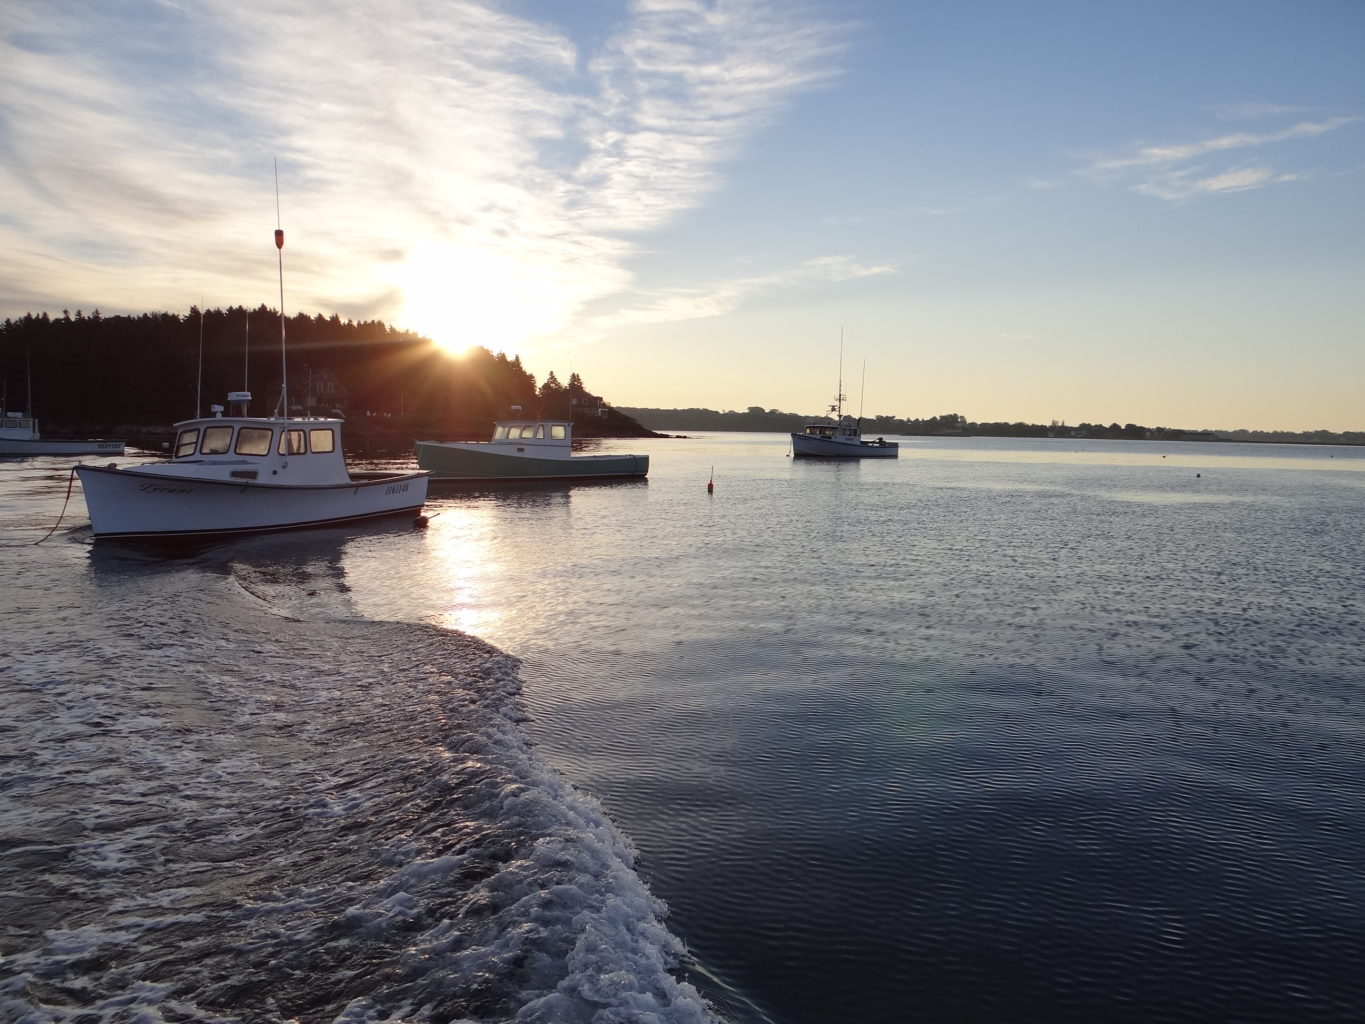 sunrise and lobster boats in Potts Harbor, South Harpswell, Maine